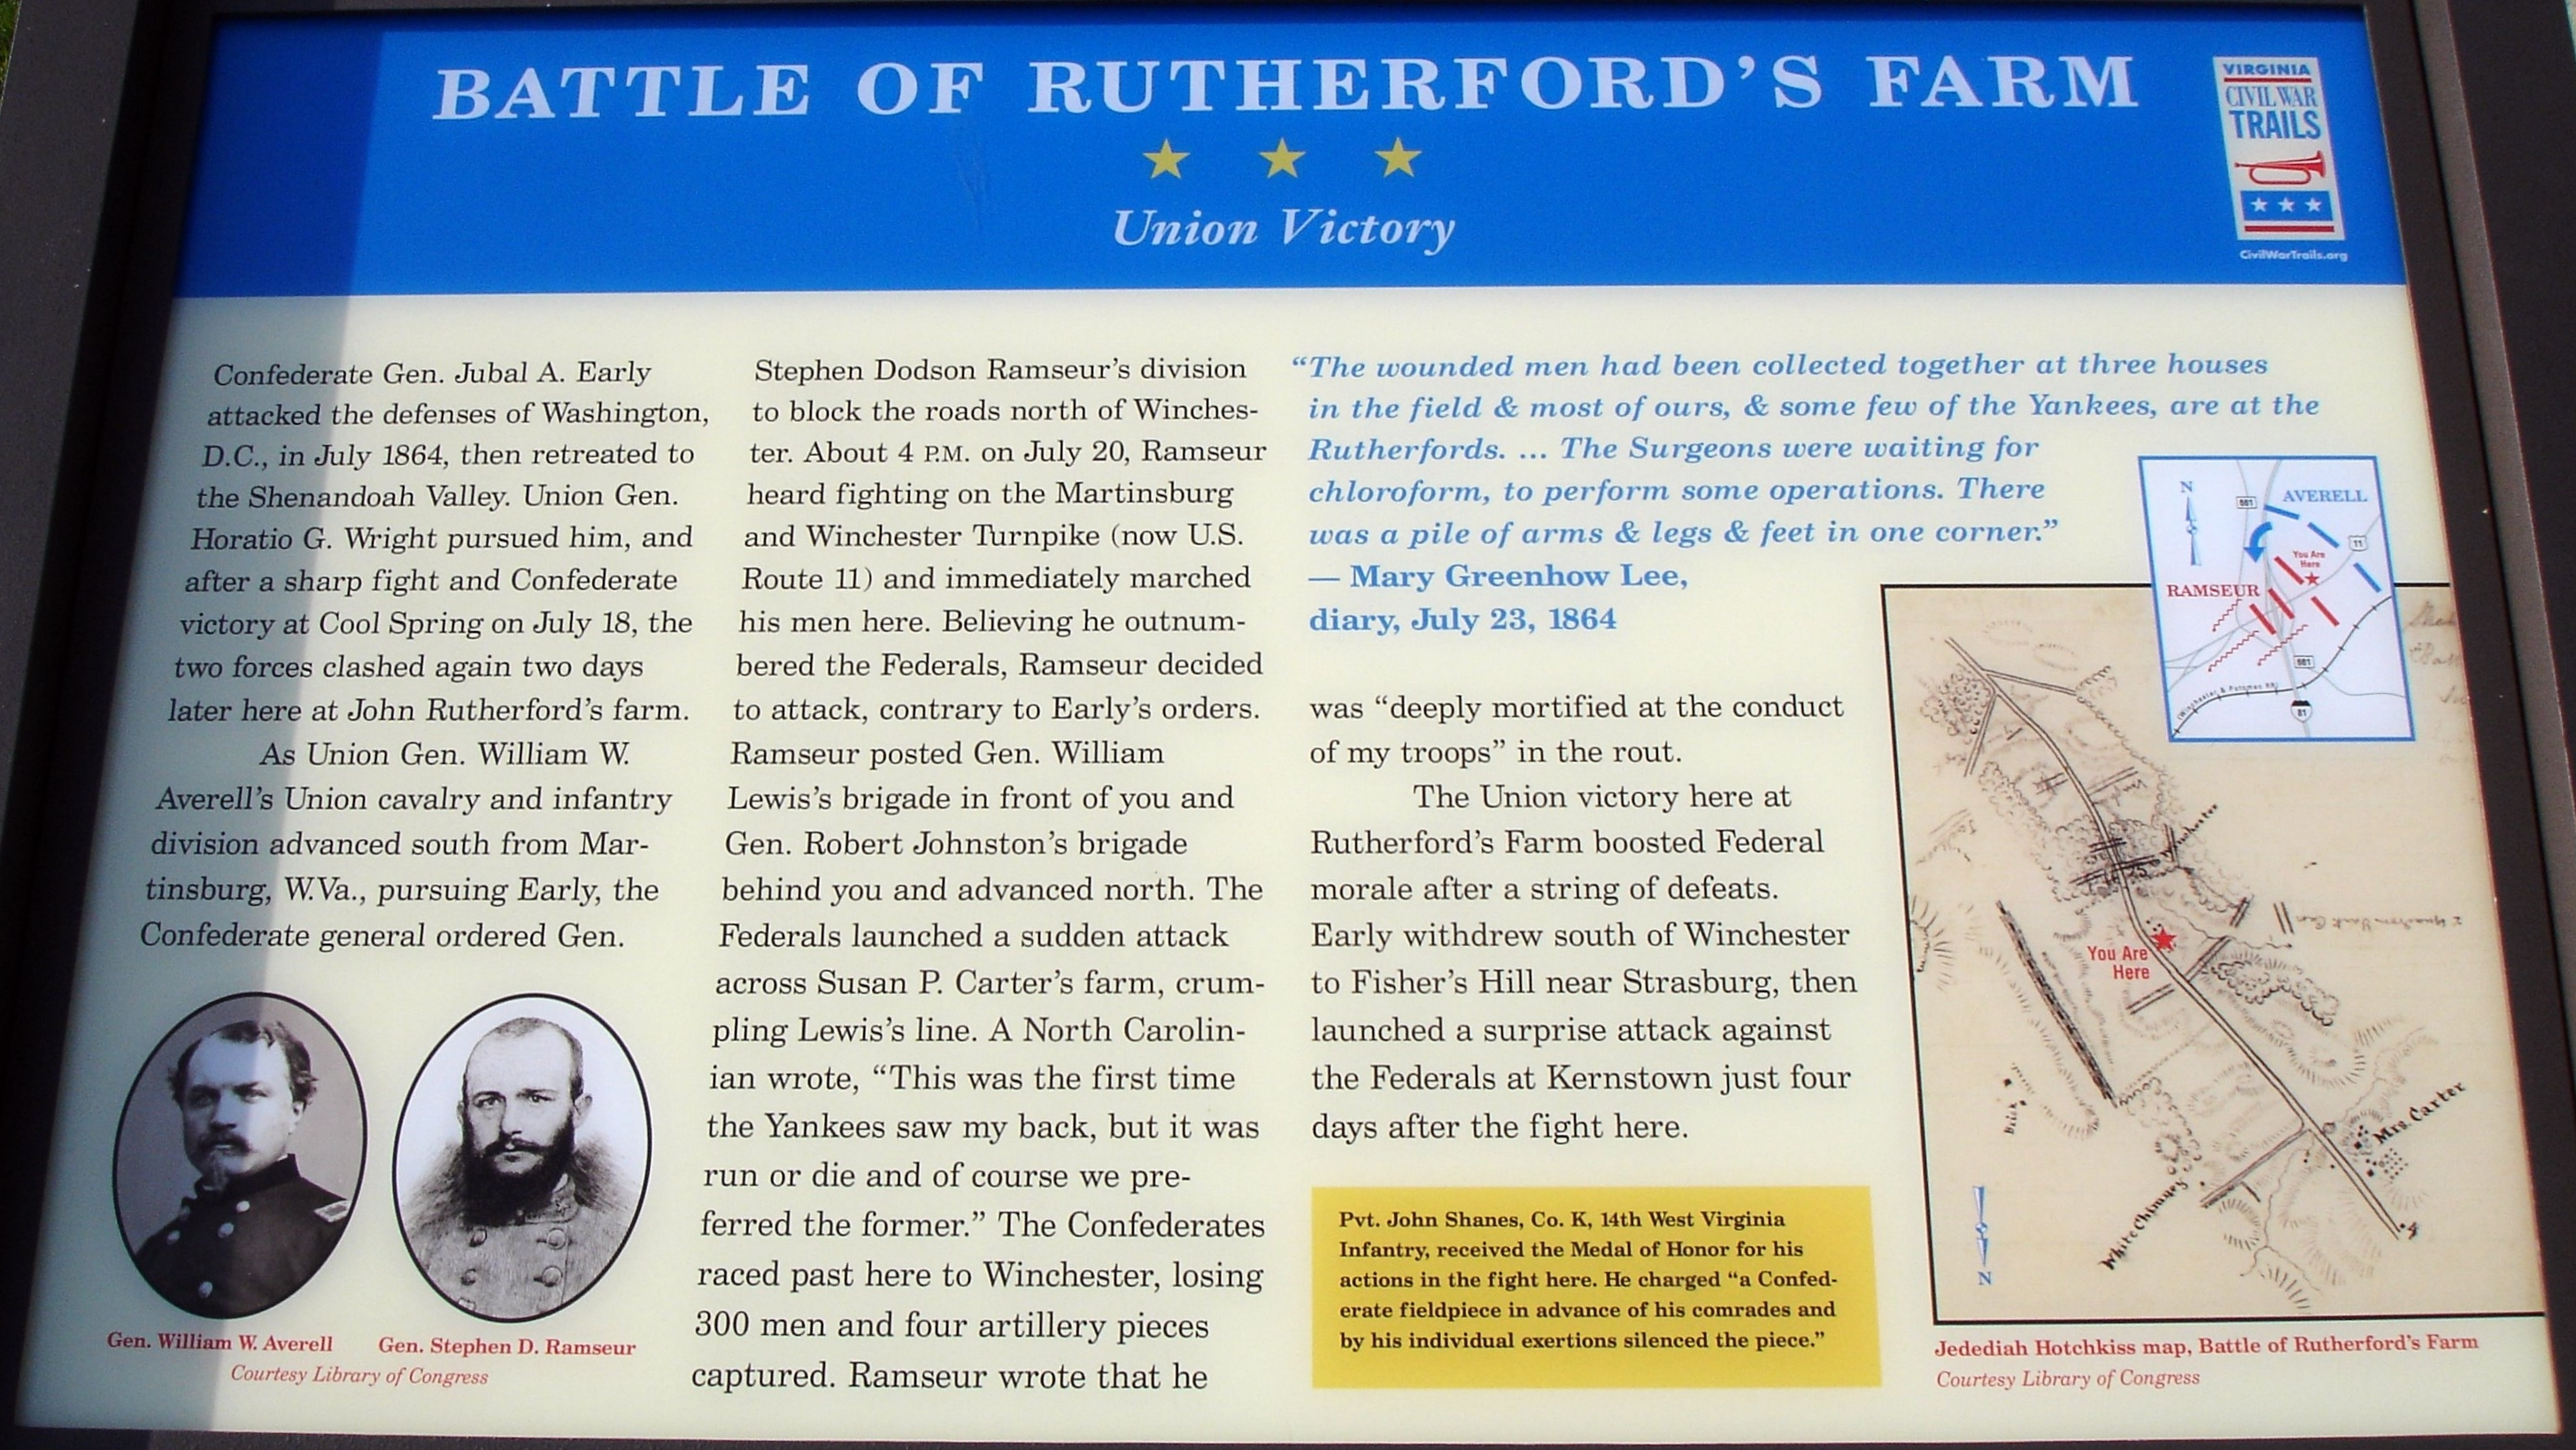 Battle of Rutherford's Farm.jpg